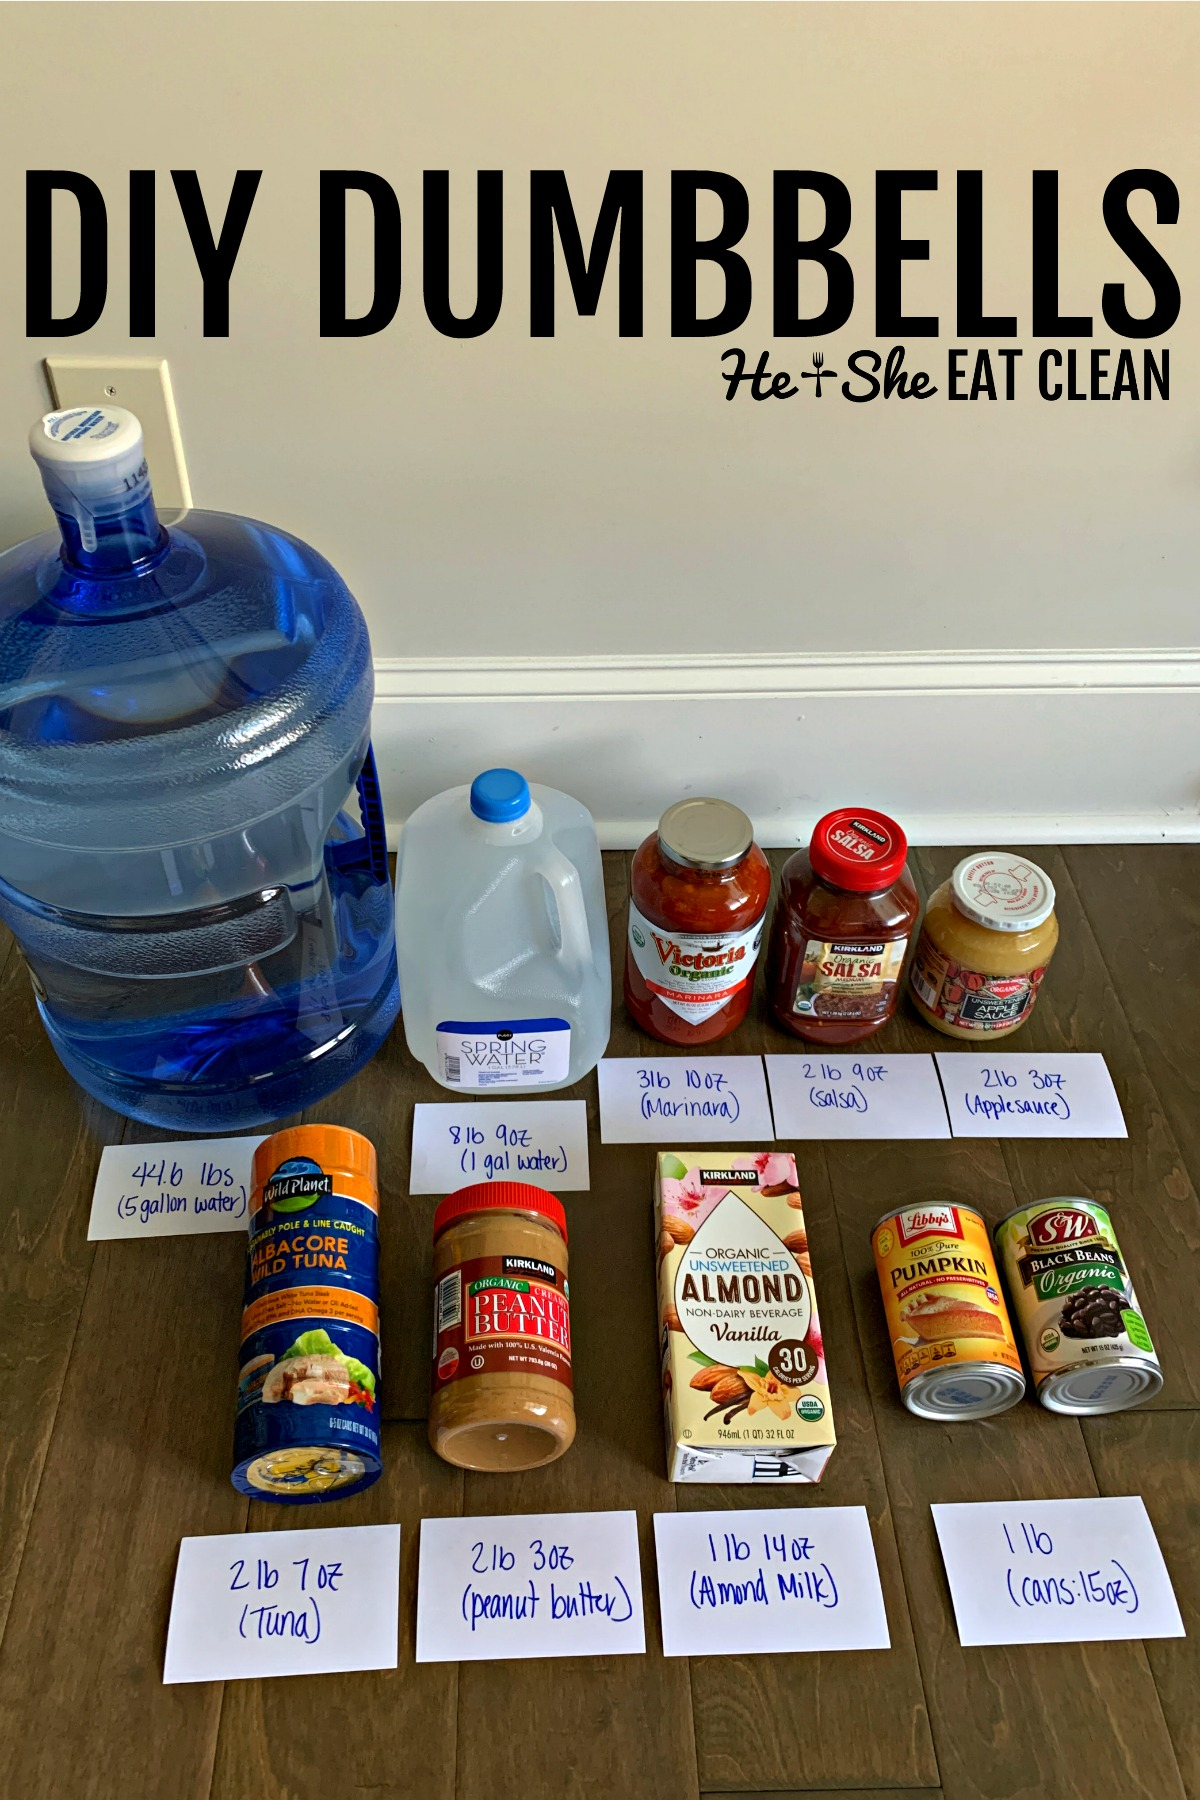 food products labeled with weight for DIY dumbbells